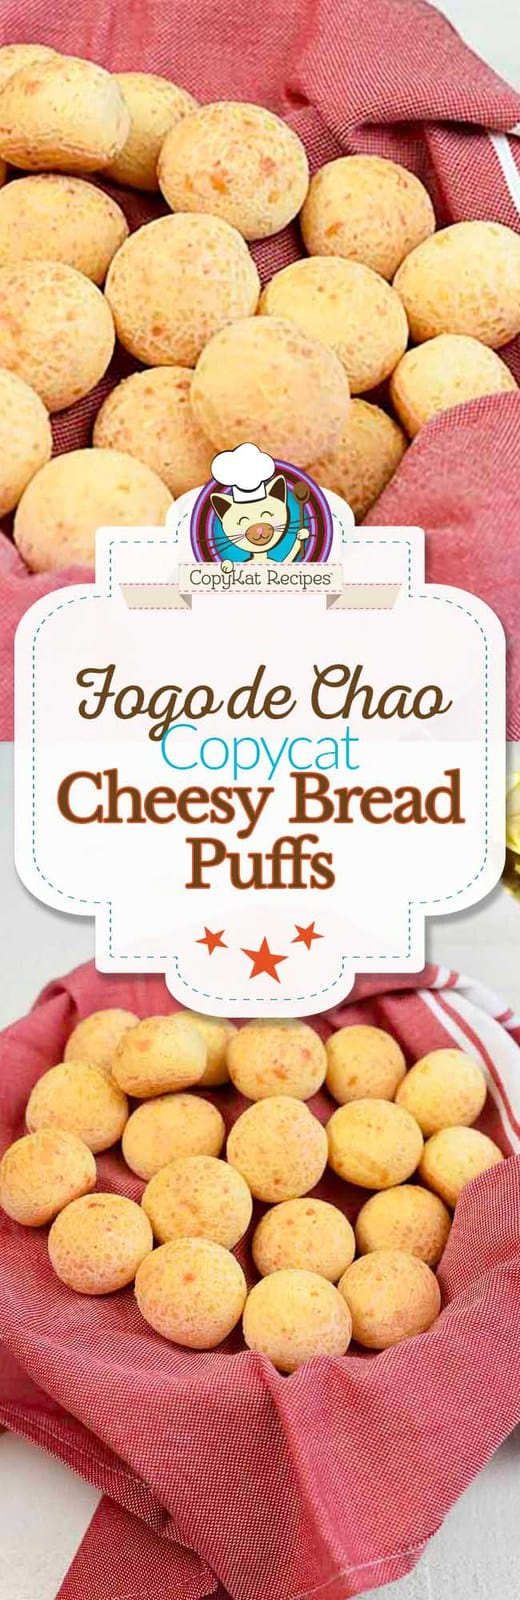 Recreate the cheesy bread puffs just like Fogo de Chao makes at home with this copycat recipe.